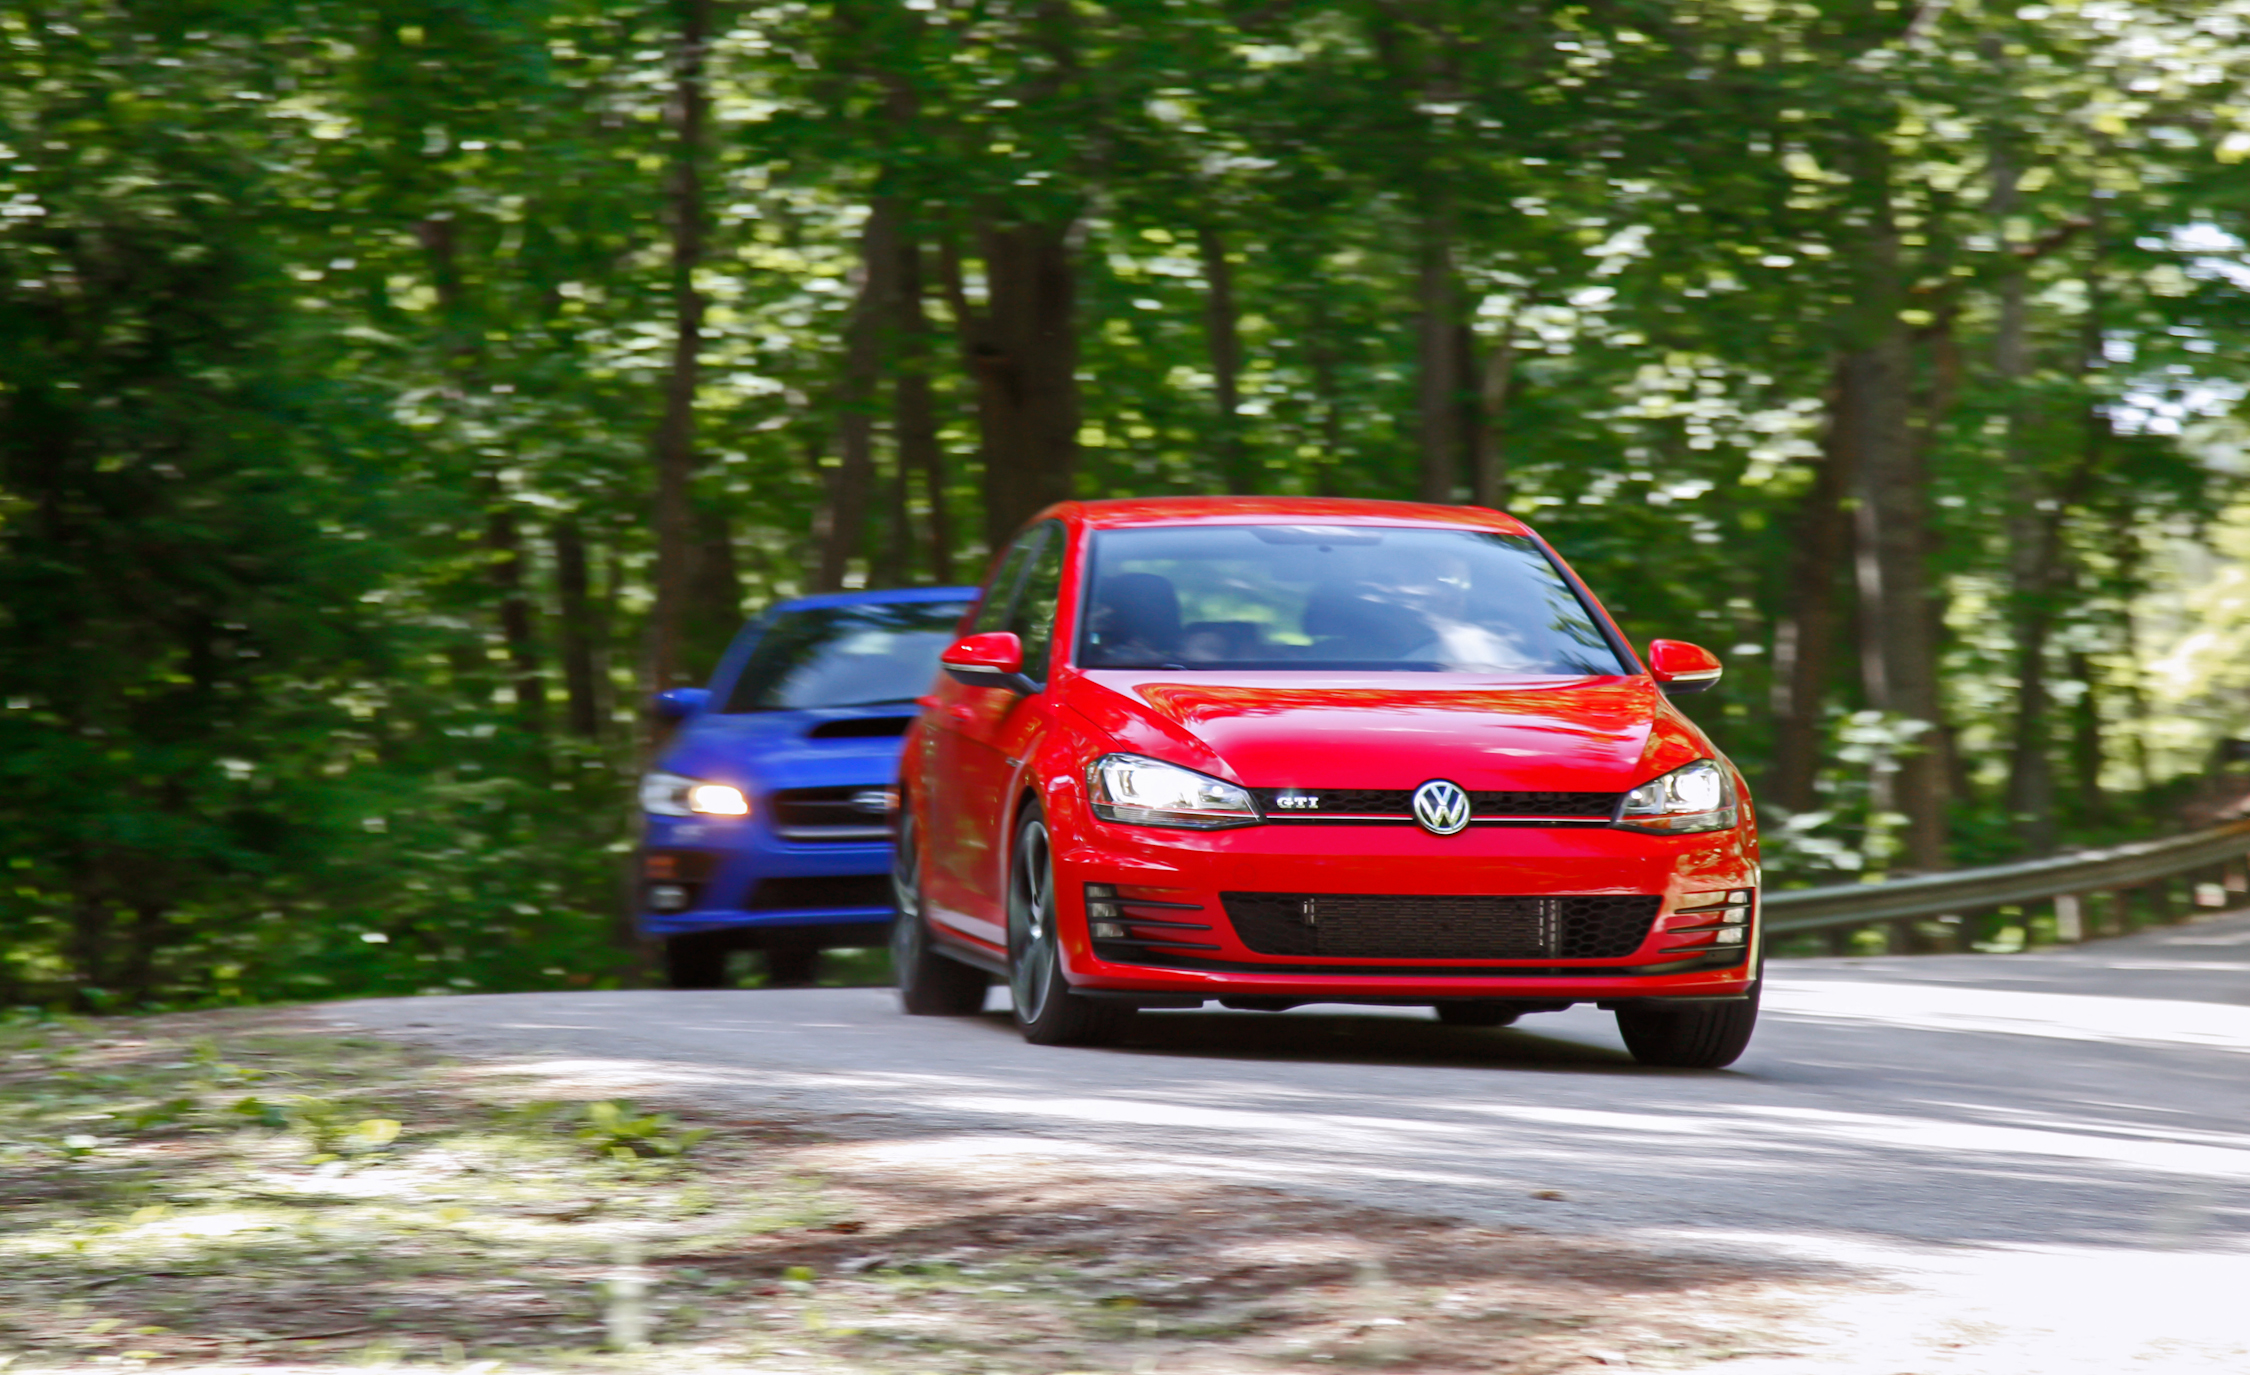 2015 Volkswagen GTI 5-Door vs Subaru WRX Comparison